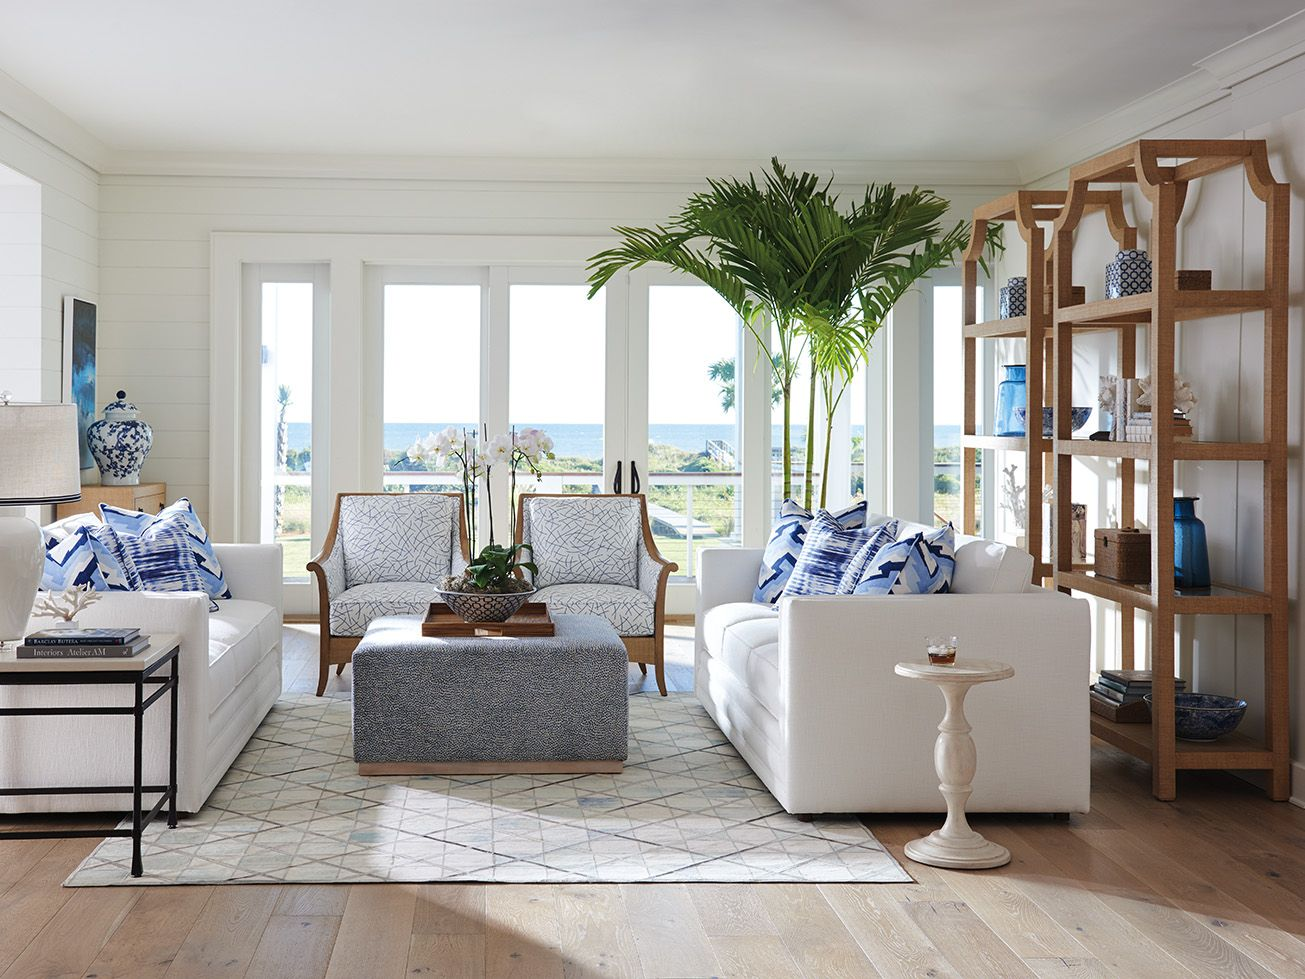 NEW - Barclay Butera lifestyle line from Lexington   April 2018 ...